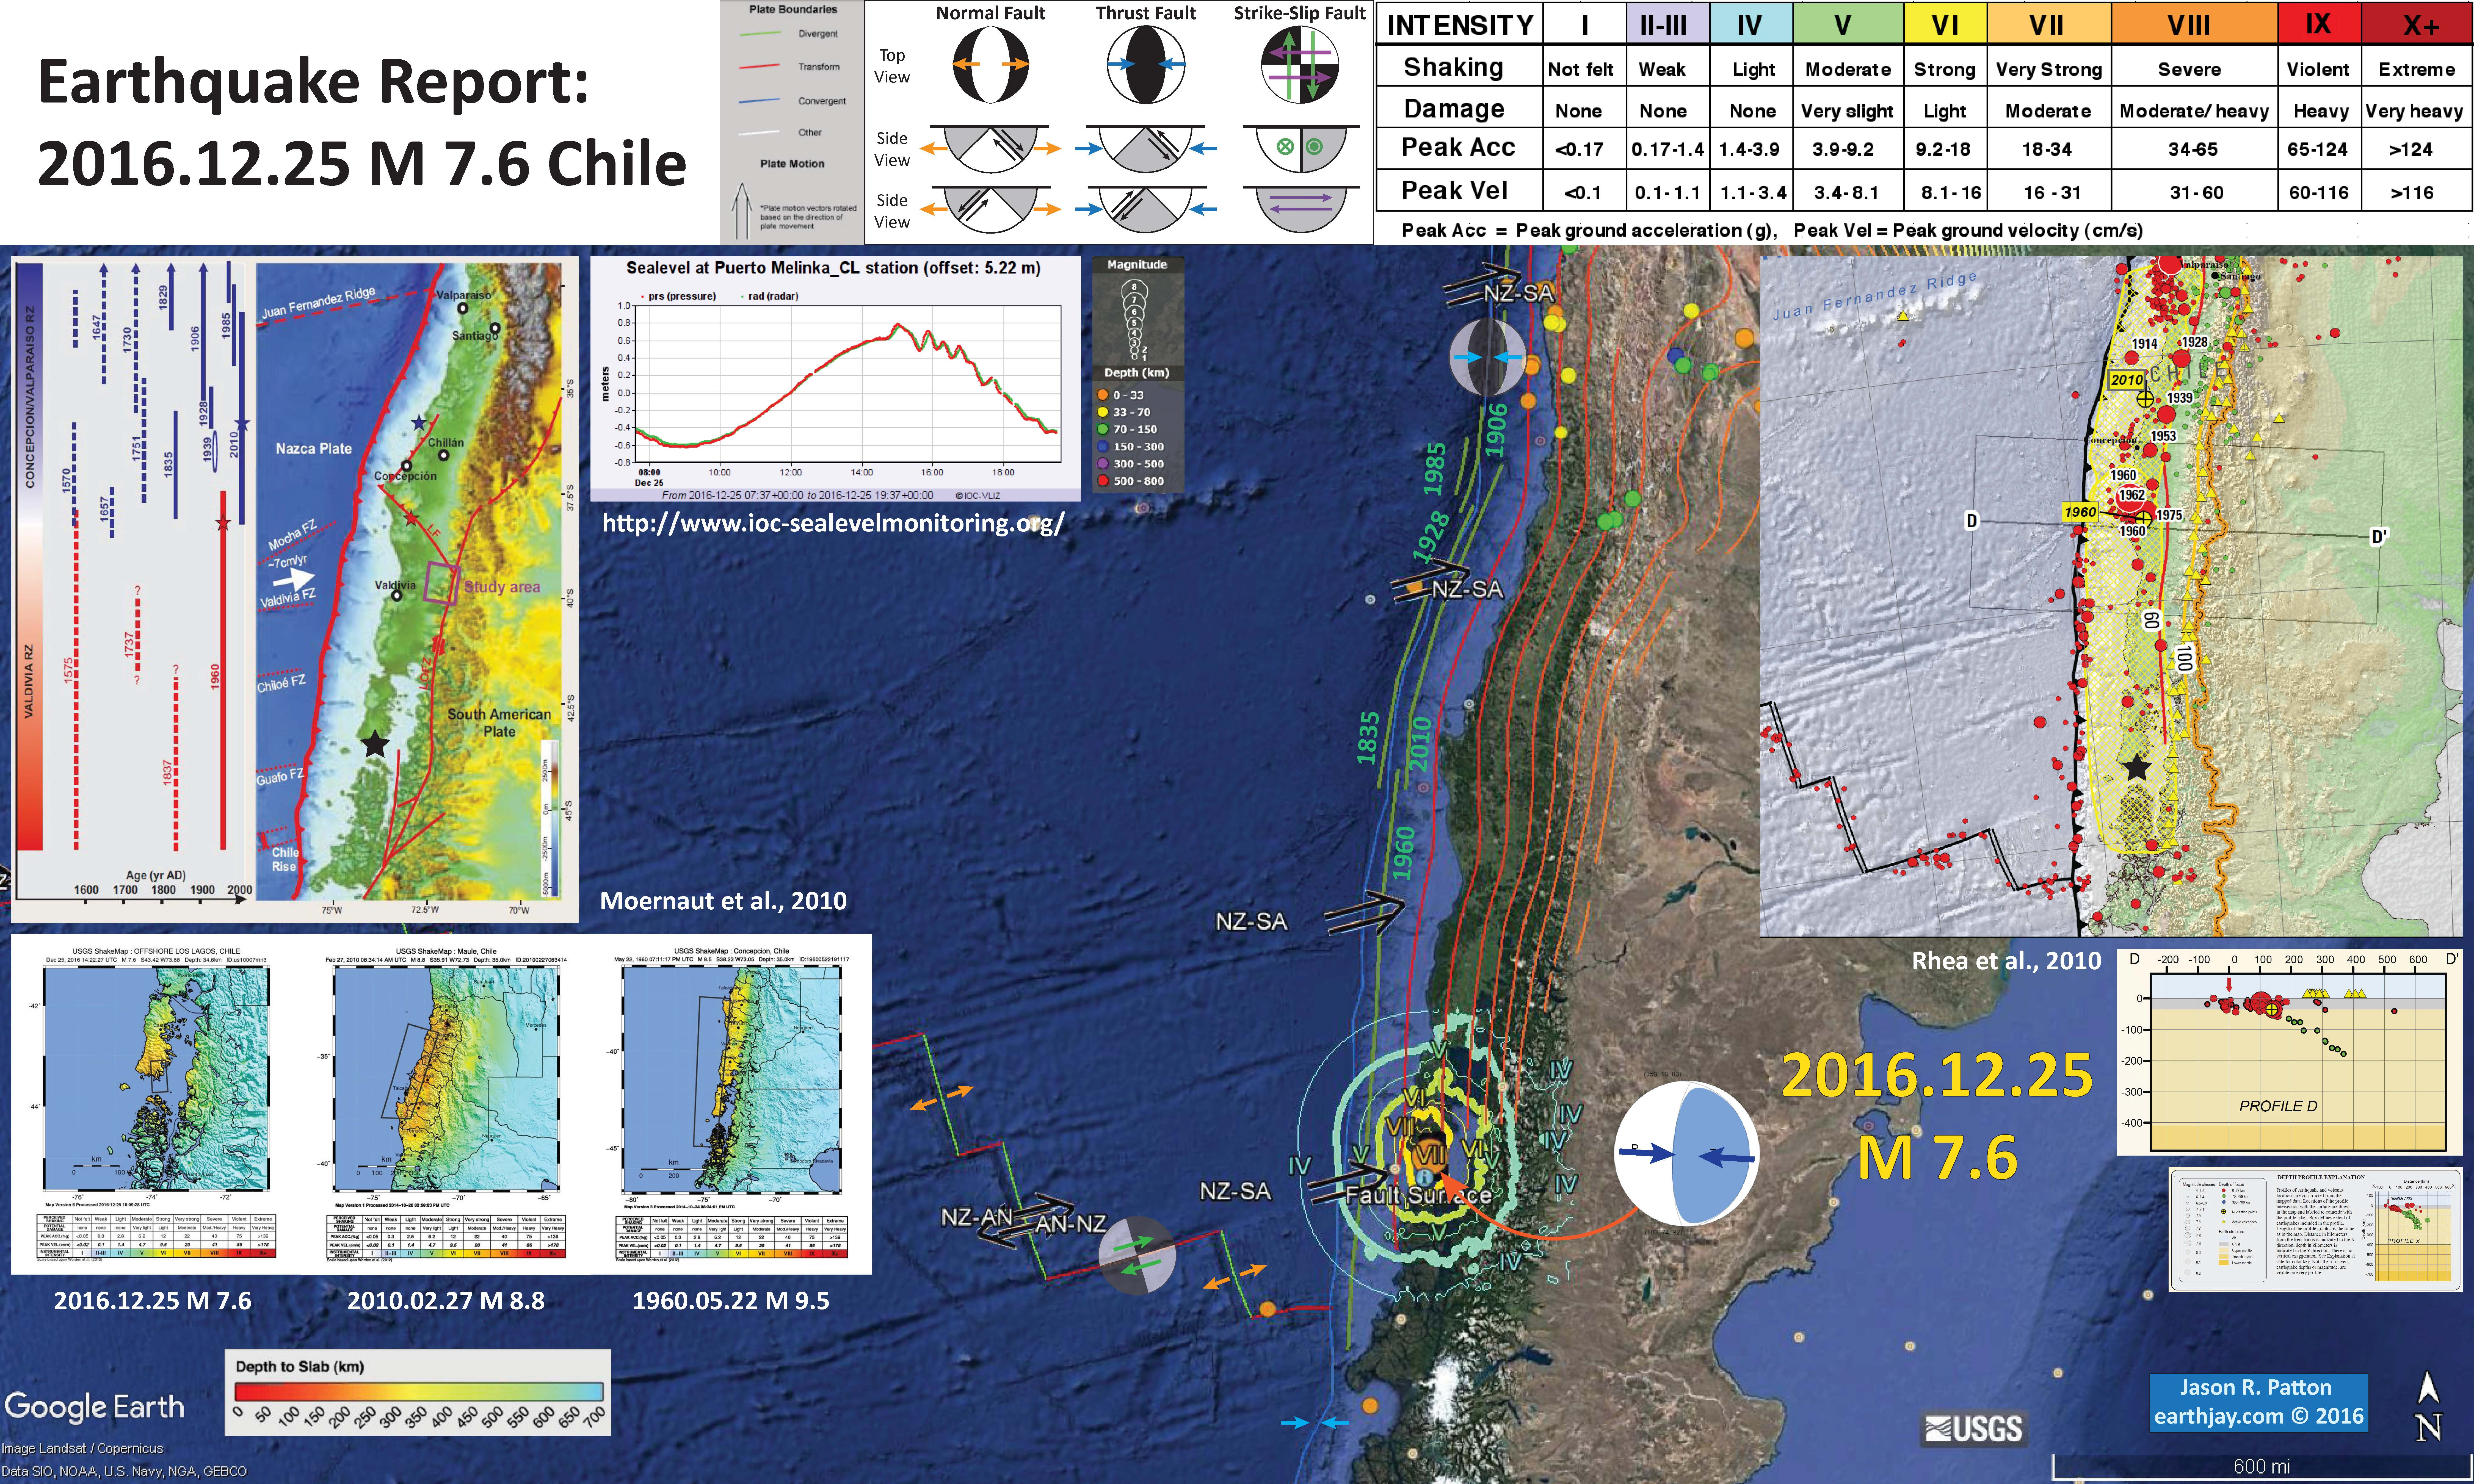 Earthquake report chile jay patton online this map shows the mmi contours for the 1960 and 2010 earthquakes in addition to this 2016 earthquake this helps us visualize the spatial extent for these gumiabroncs Image collections